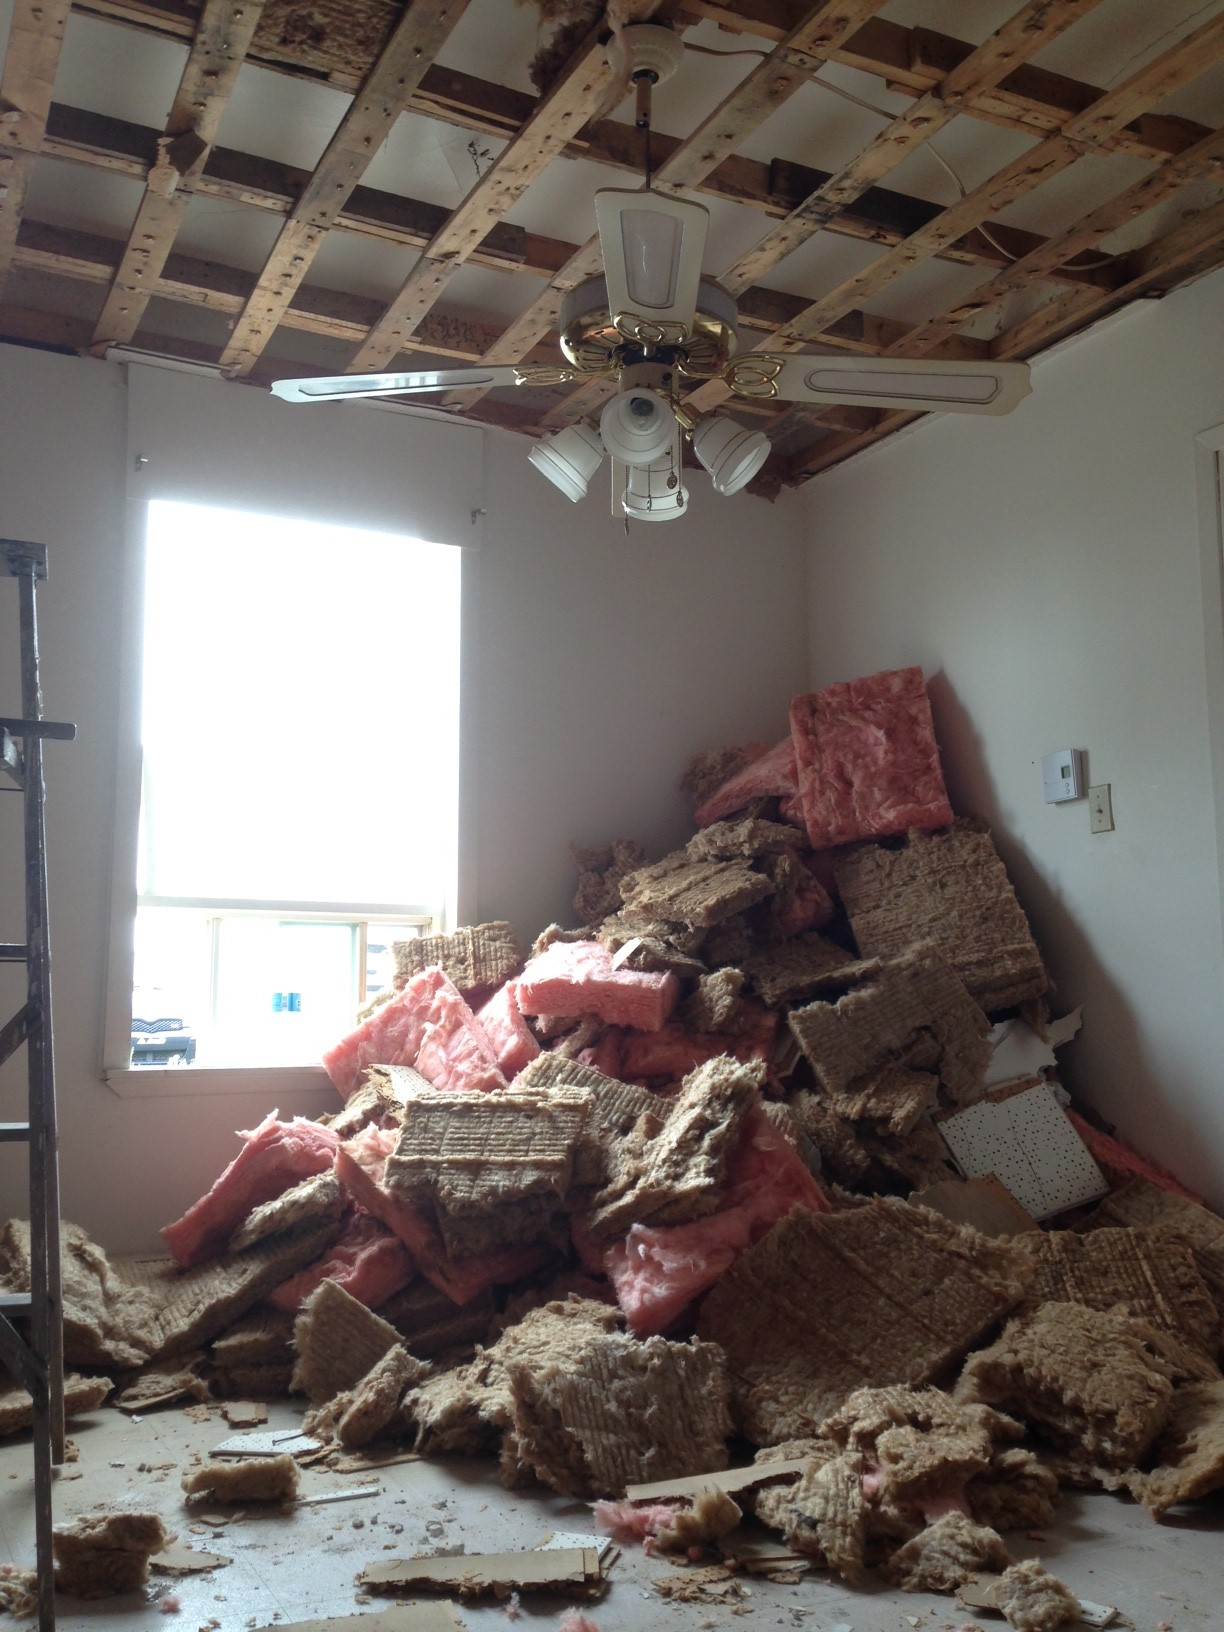 That's a lot of insulation!